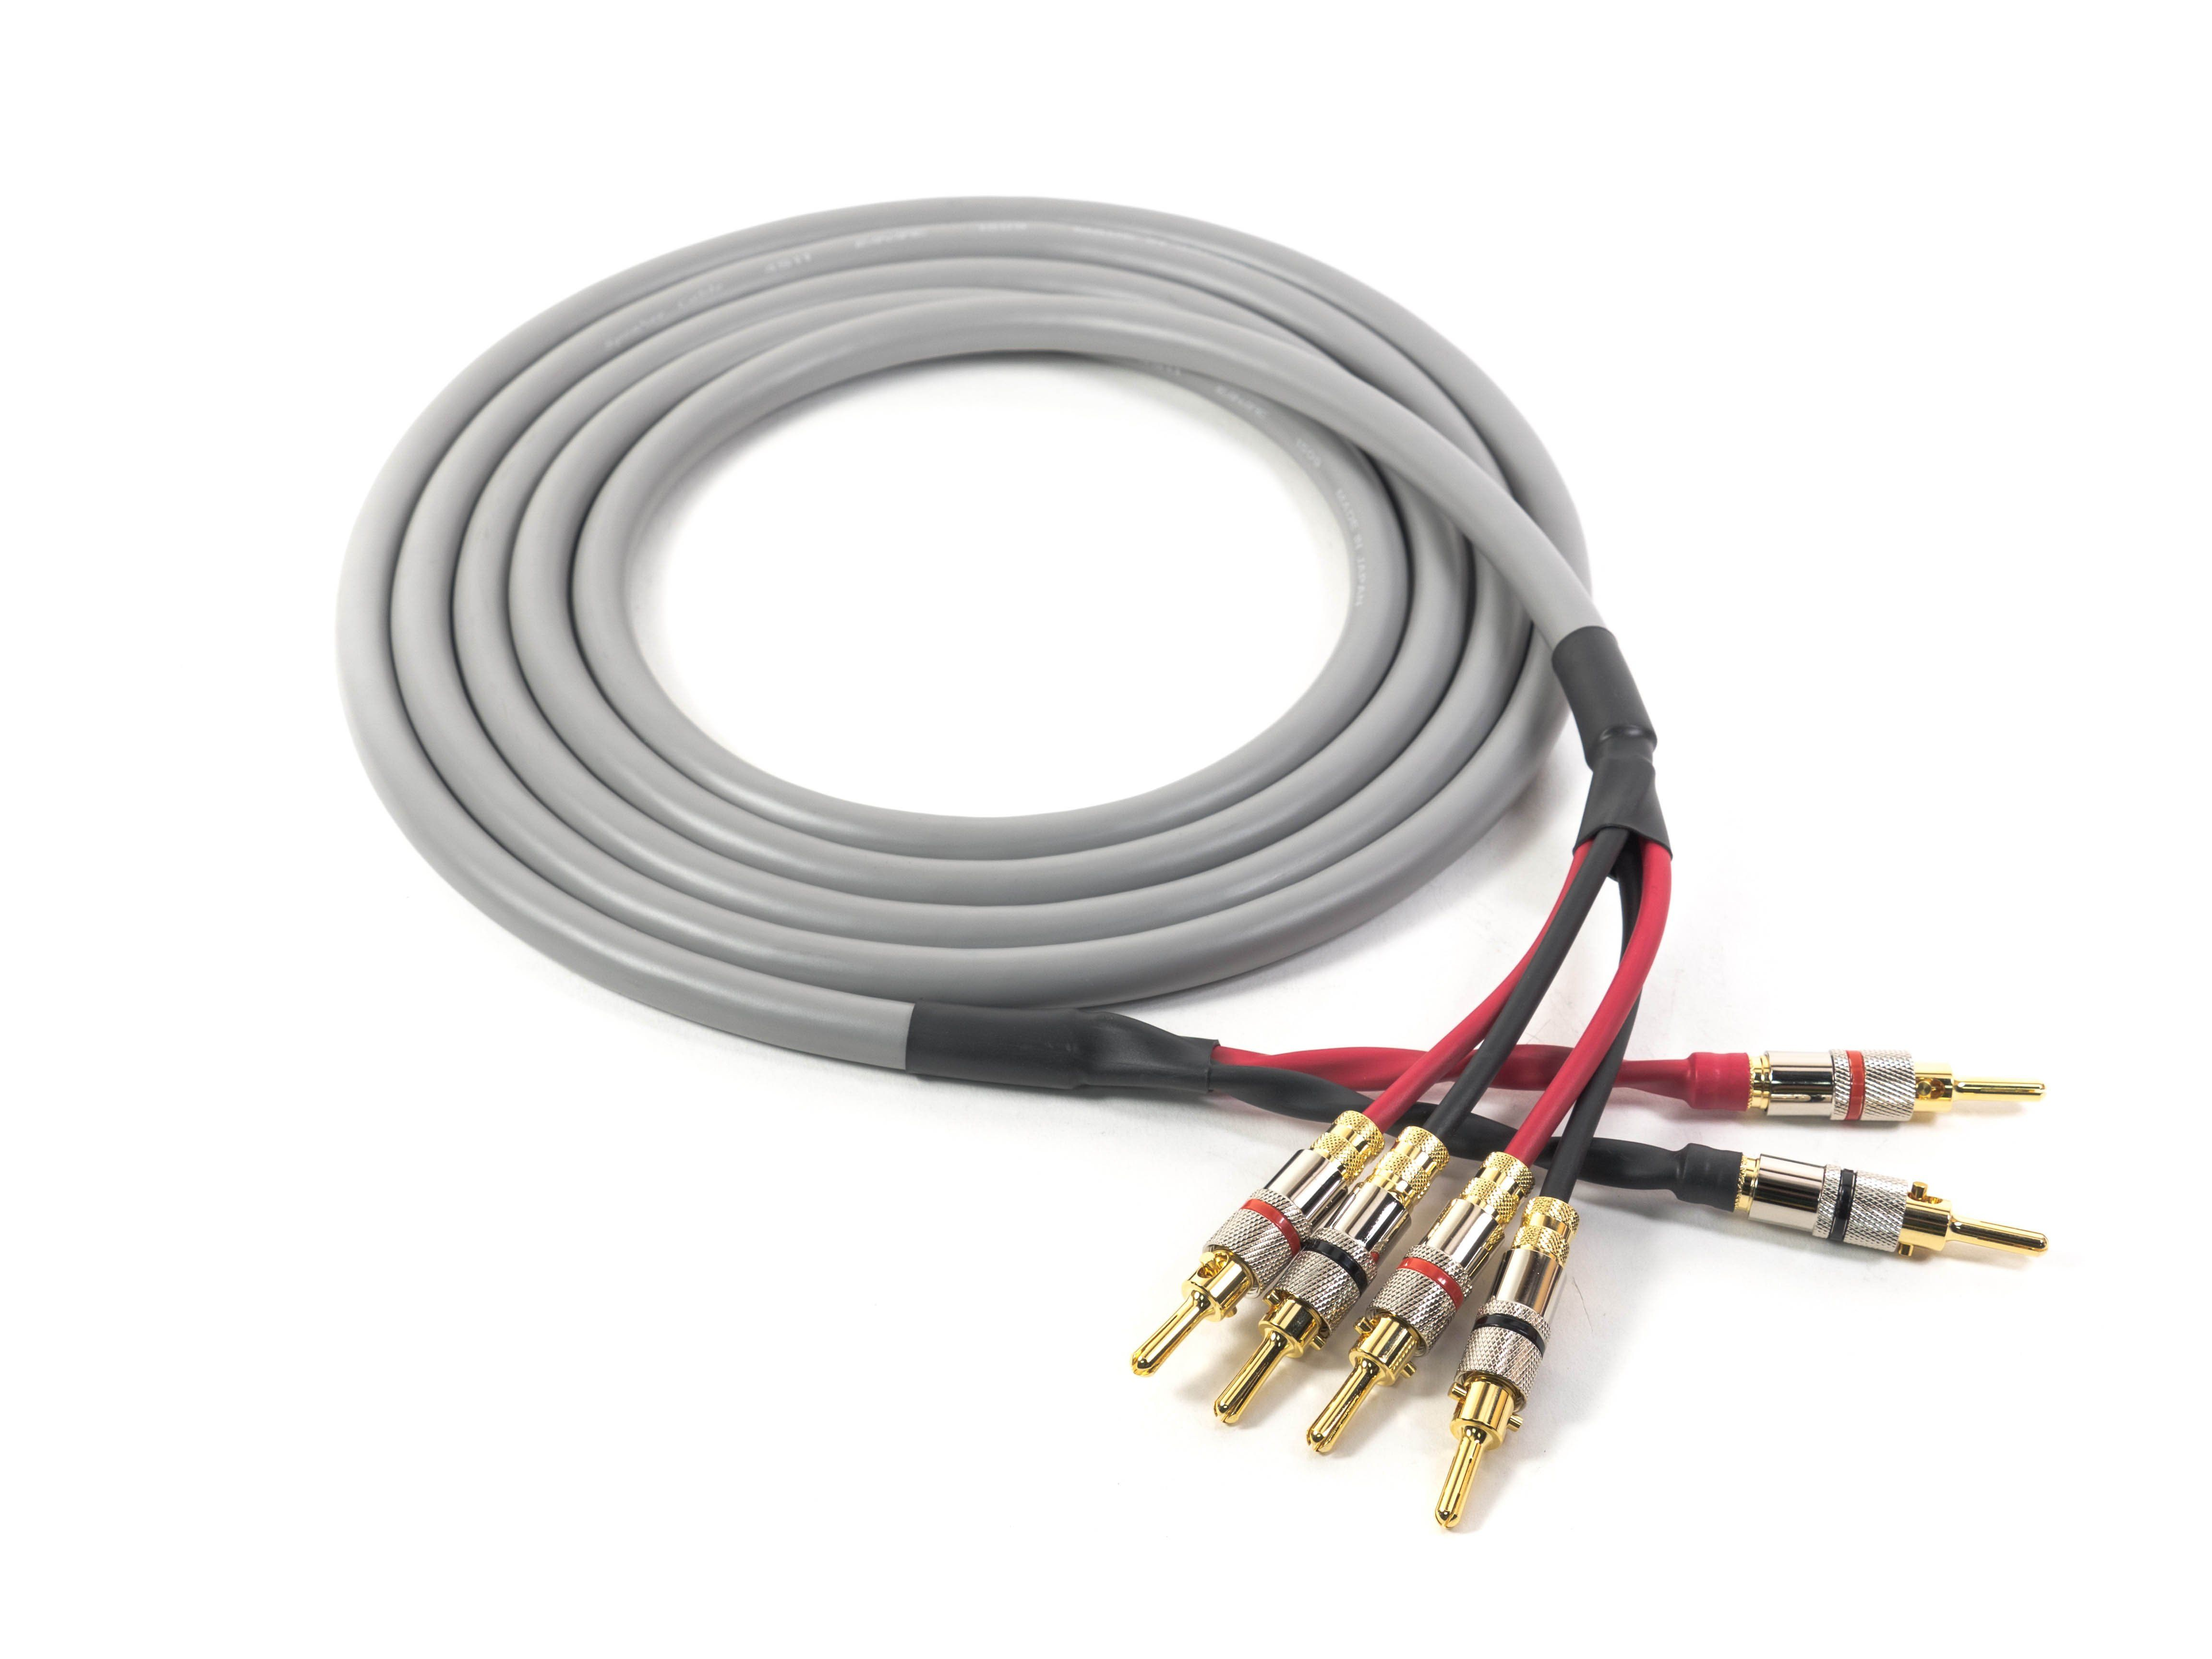 Canare 4S11 Professional Speaker Cable with Locking Banana Plugs